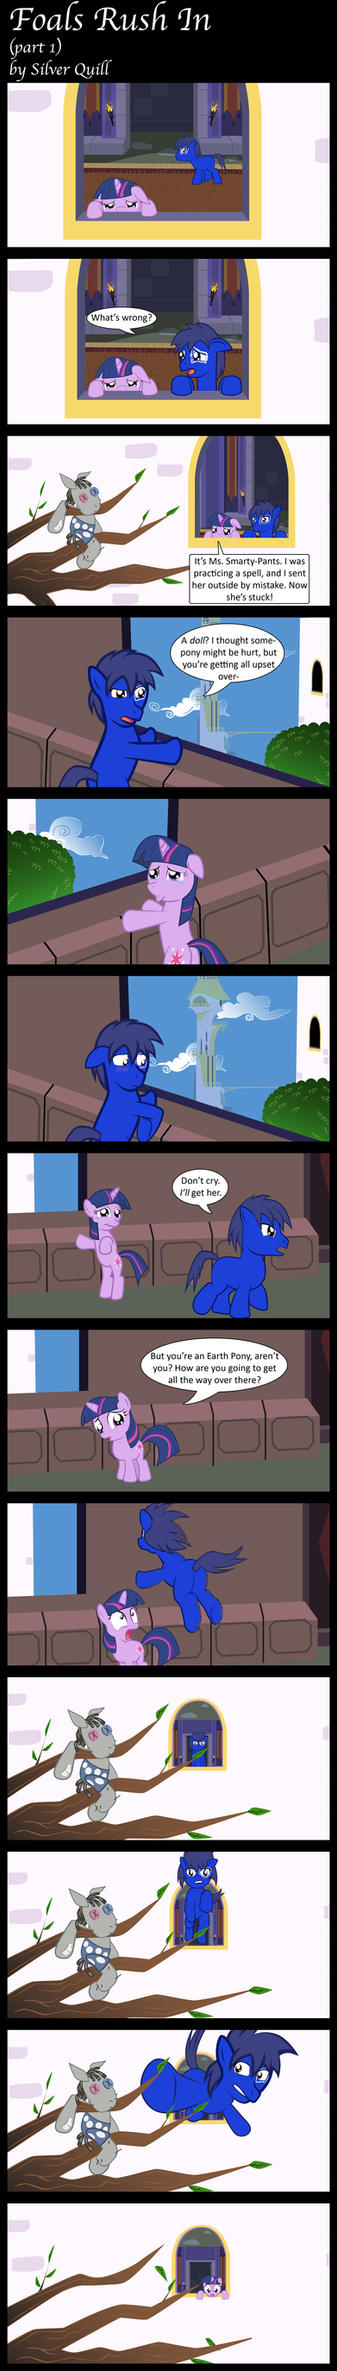 Foals Rush In (part 1) by MLP-Silver-Quill